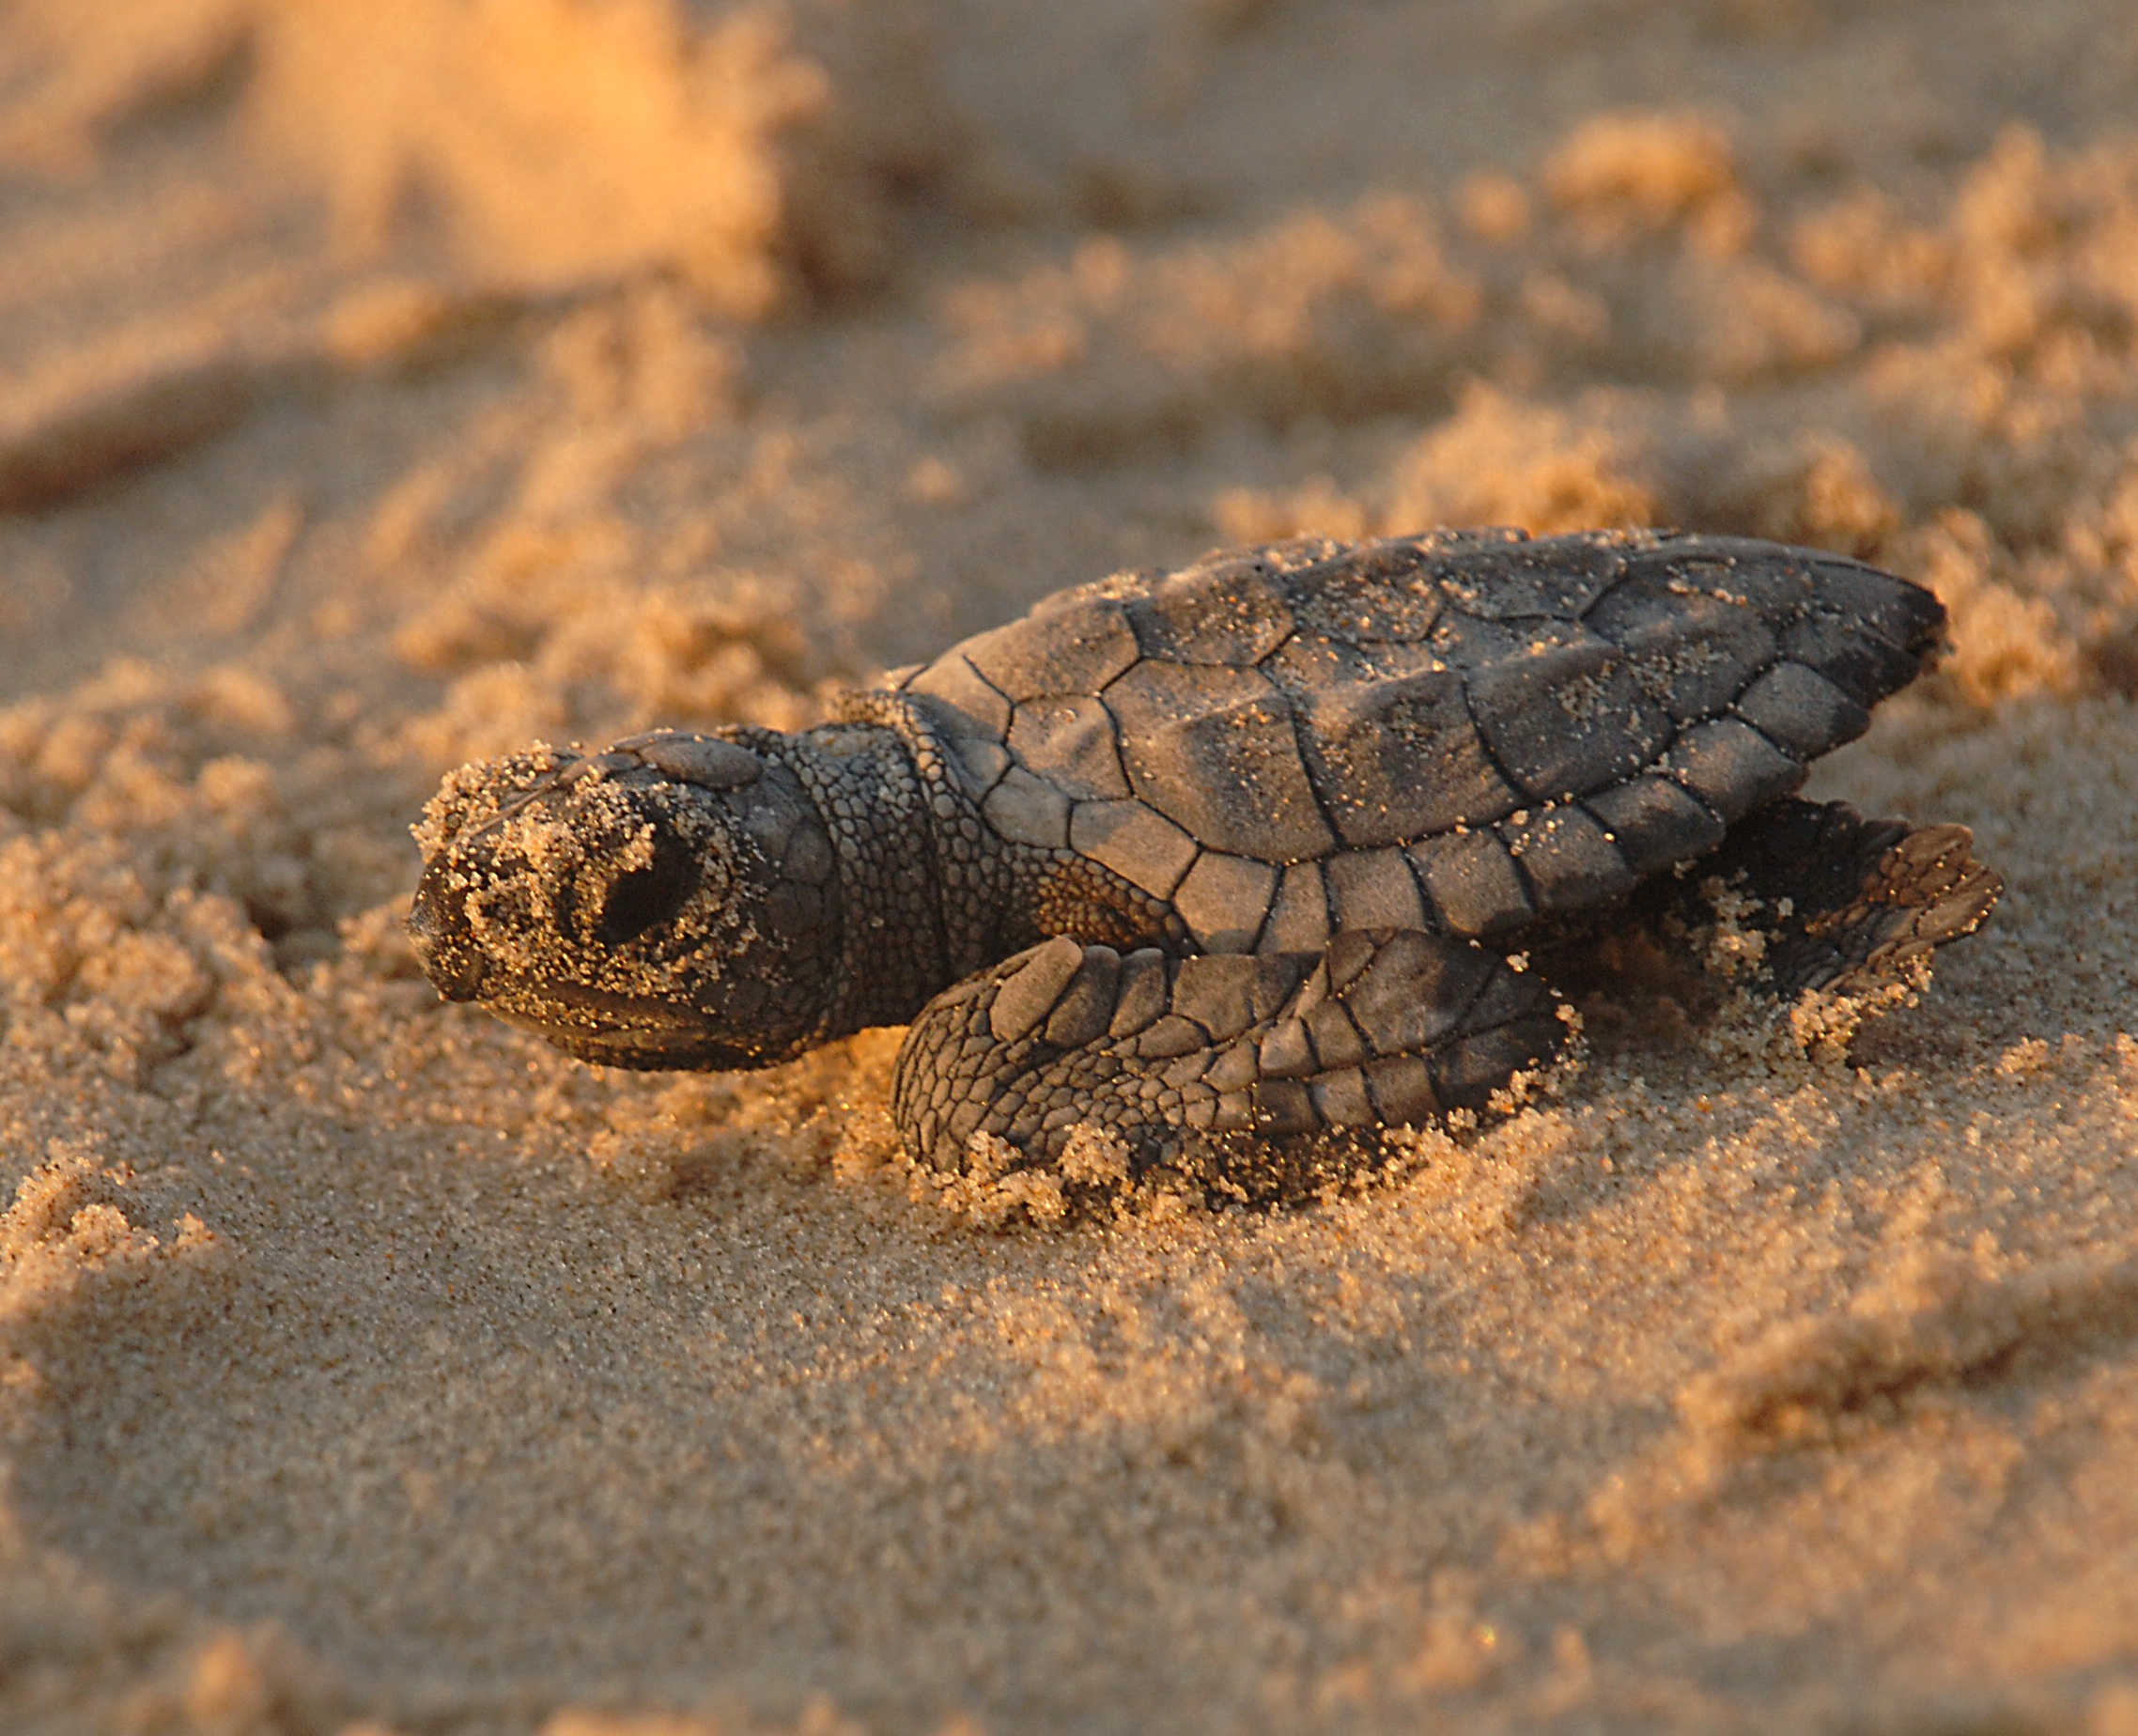 Kemp's Ridley Sea turtle hatchling